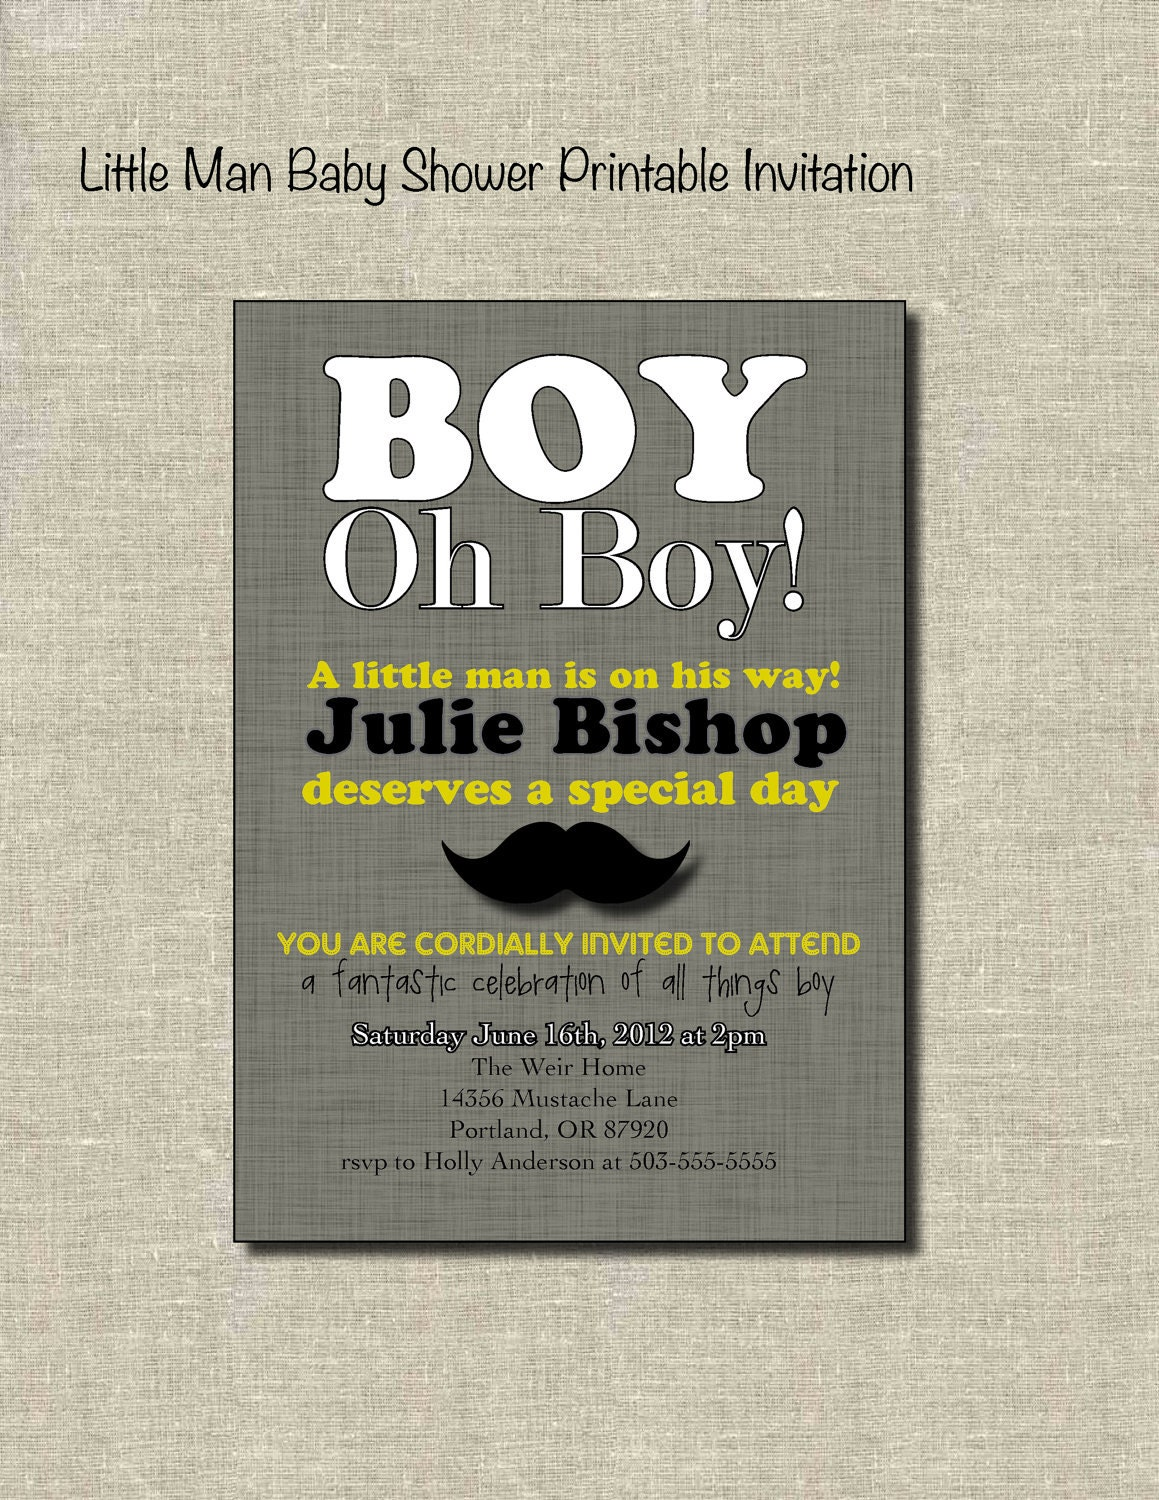 little man baby shower printable invitation